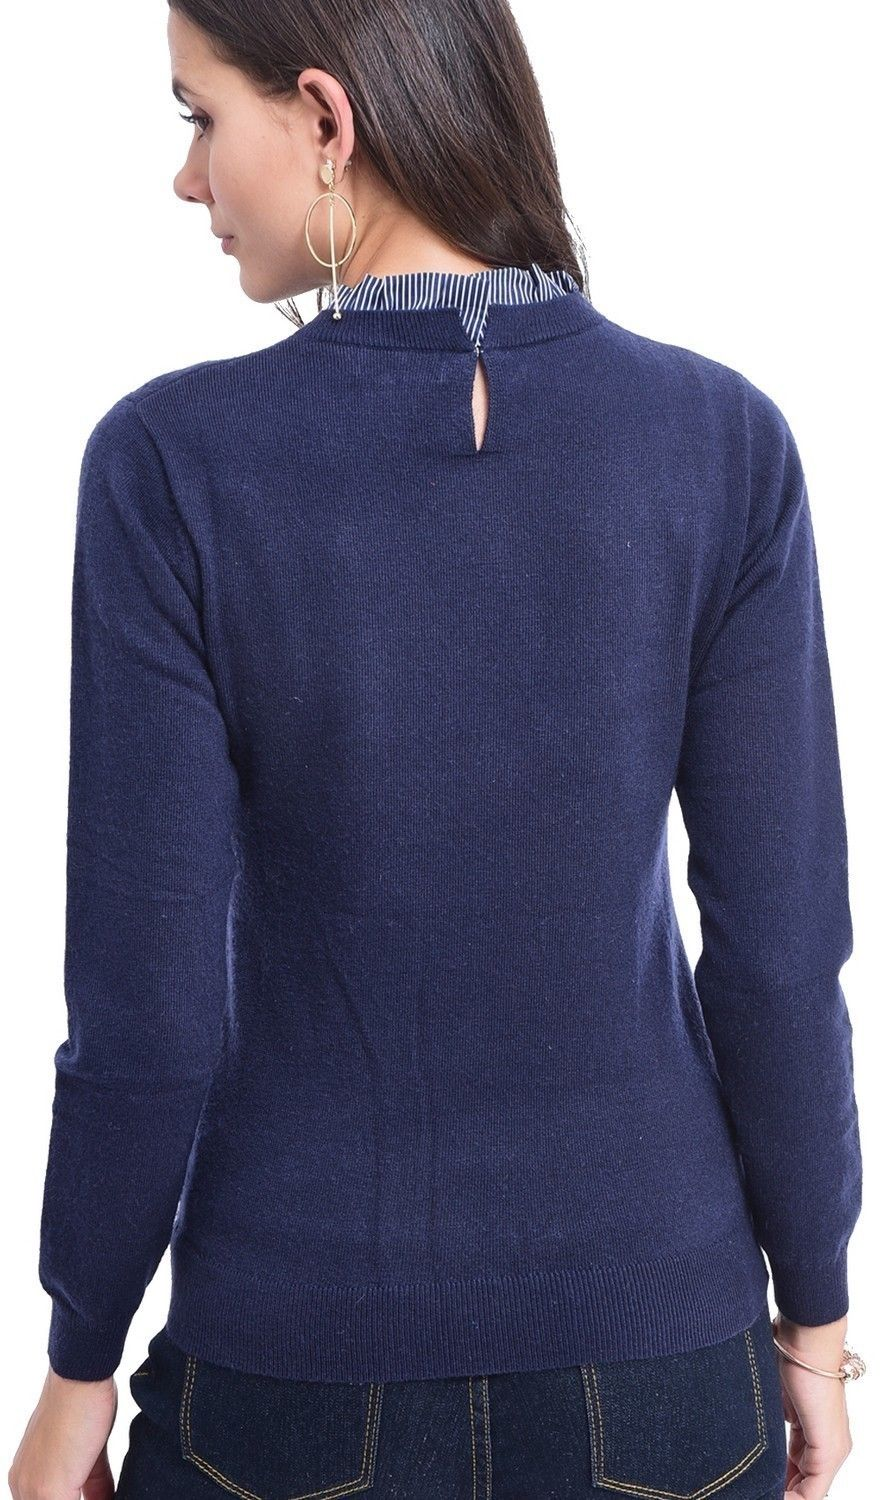 C&JO High Neck Striped Collar Sweater in Navy